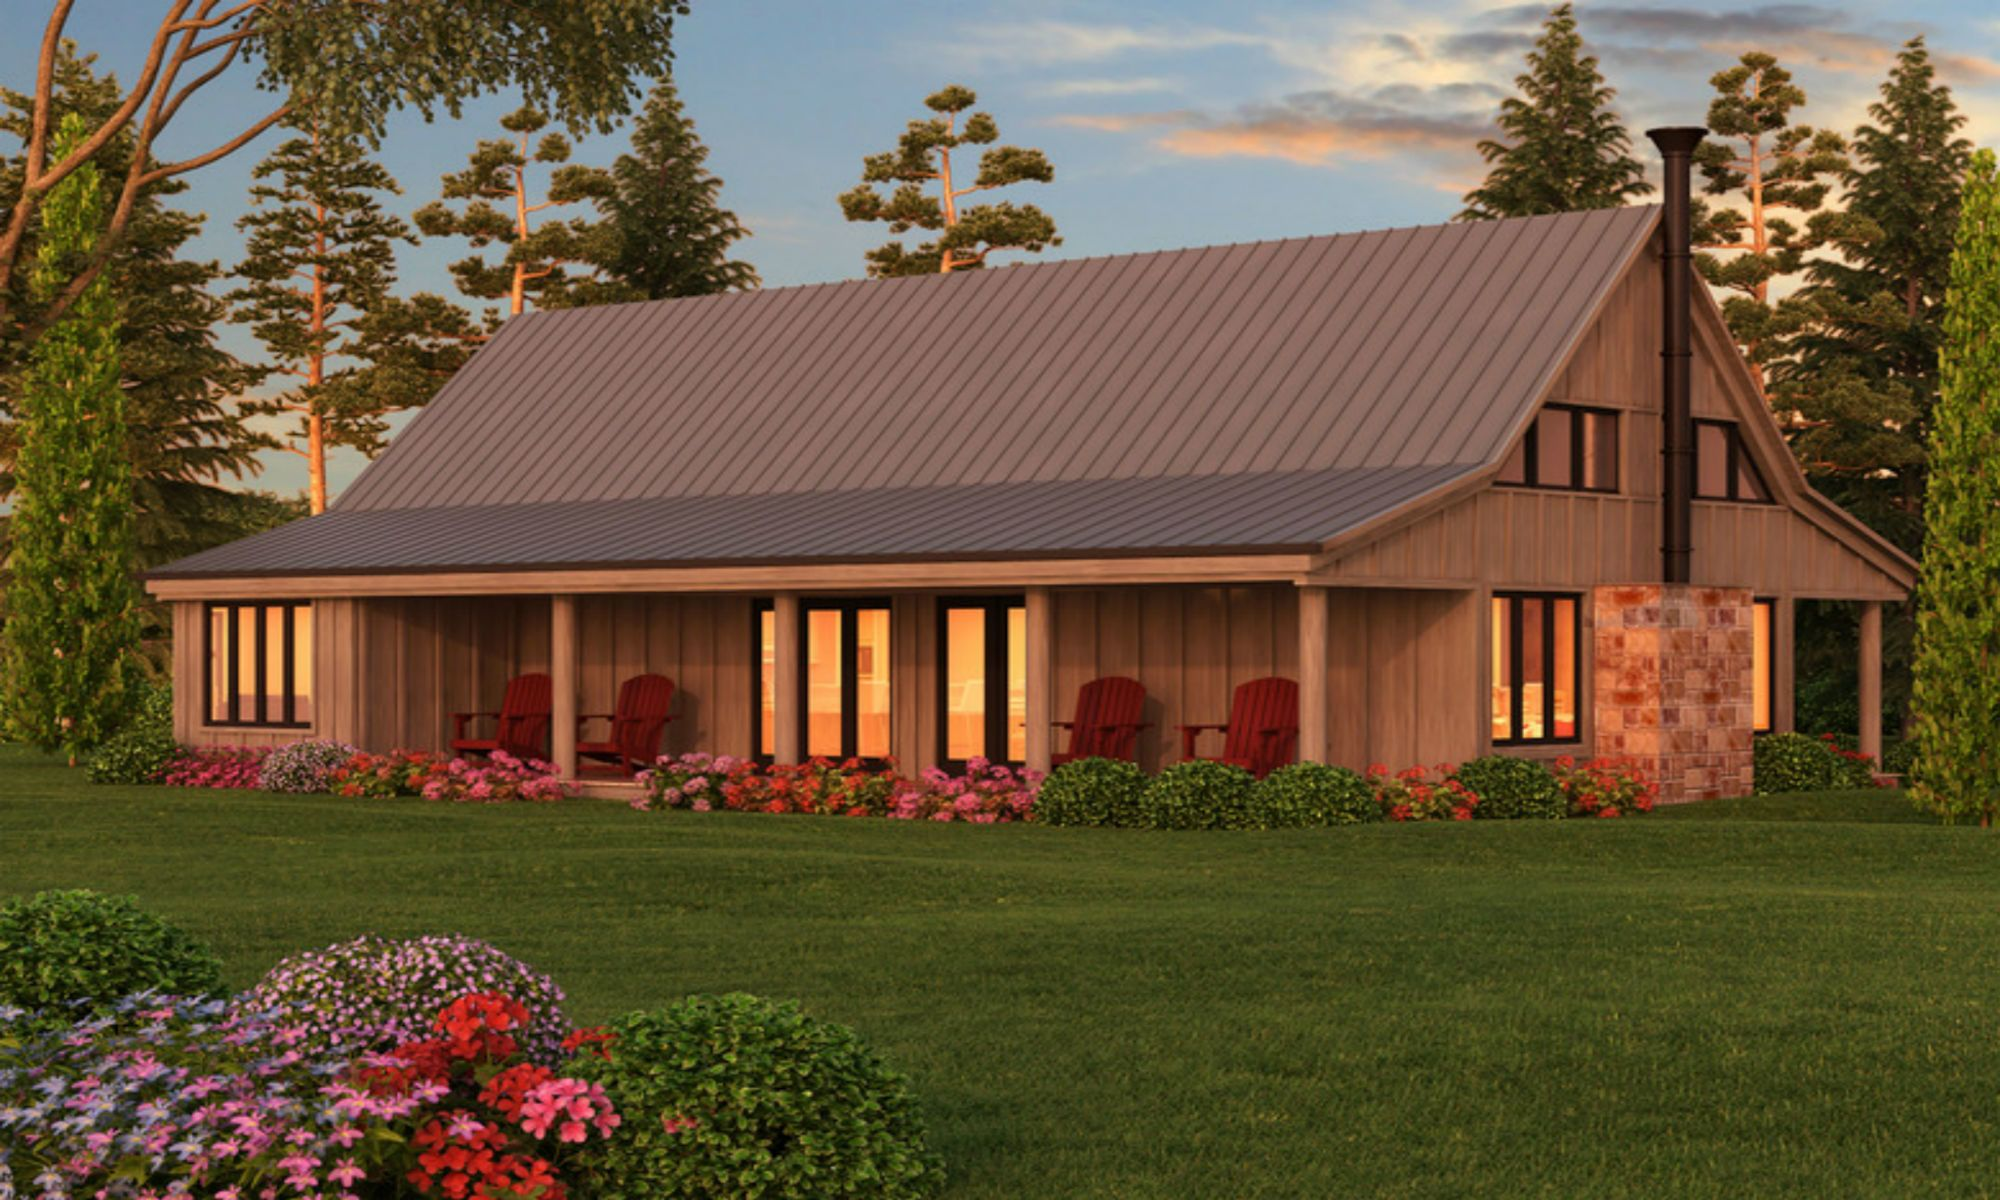 Pole barn homes house projects pinterest barn house for Pole barn home kits indiana